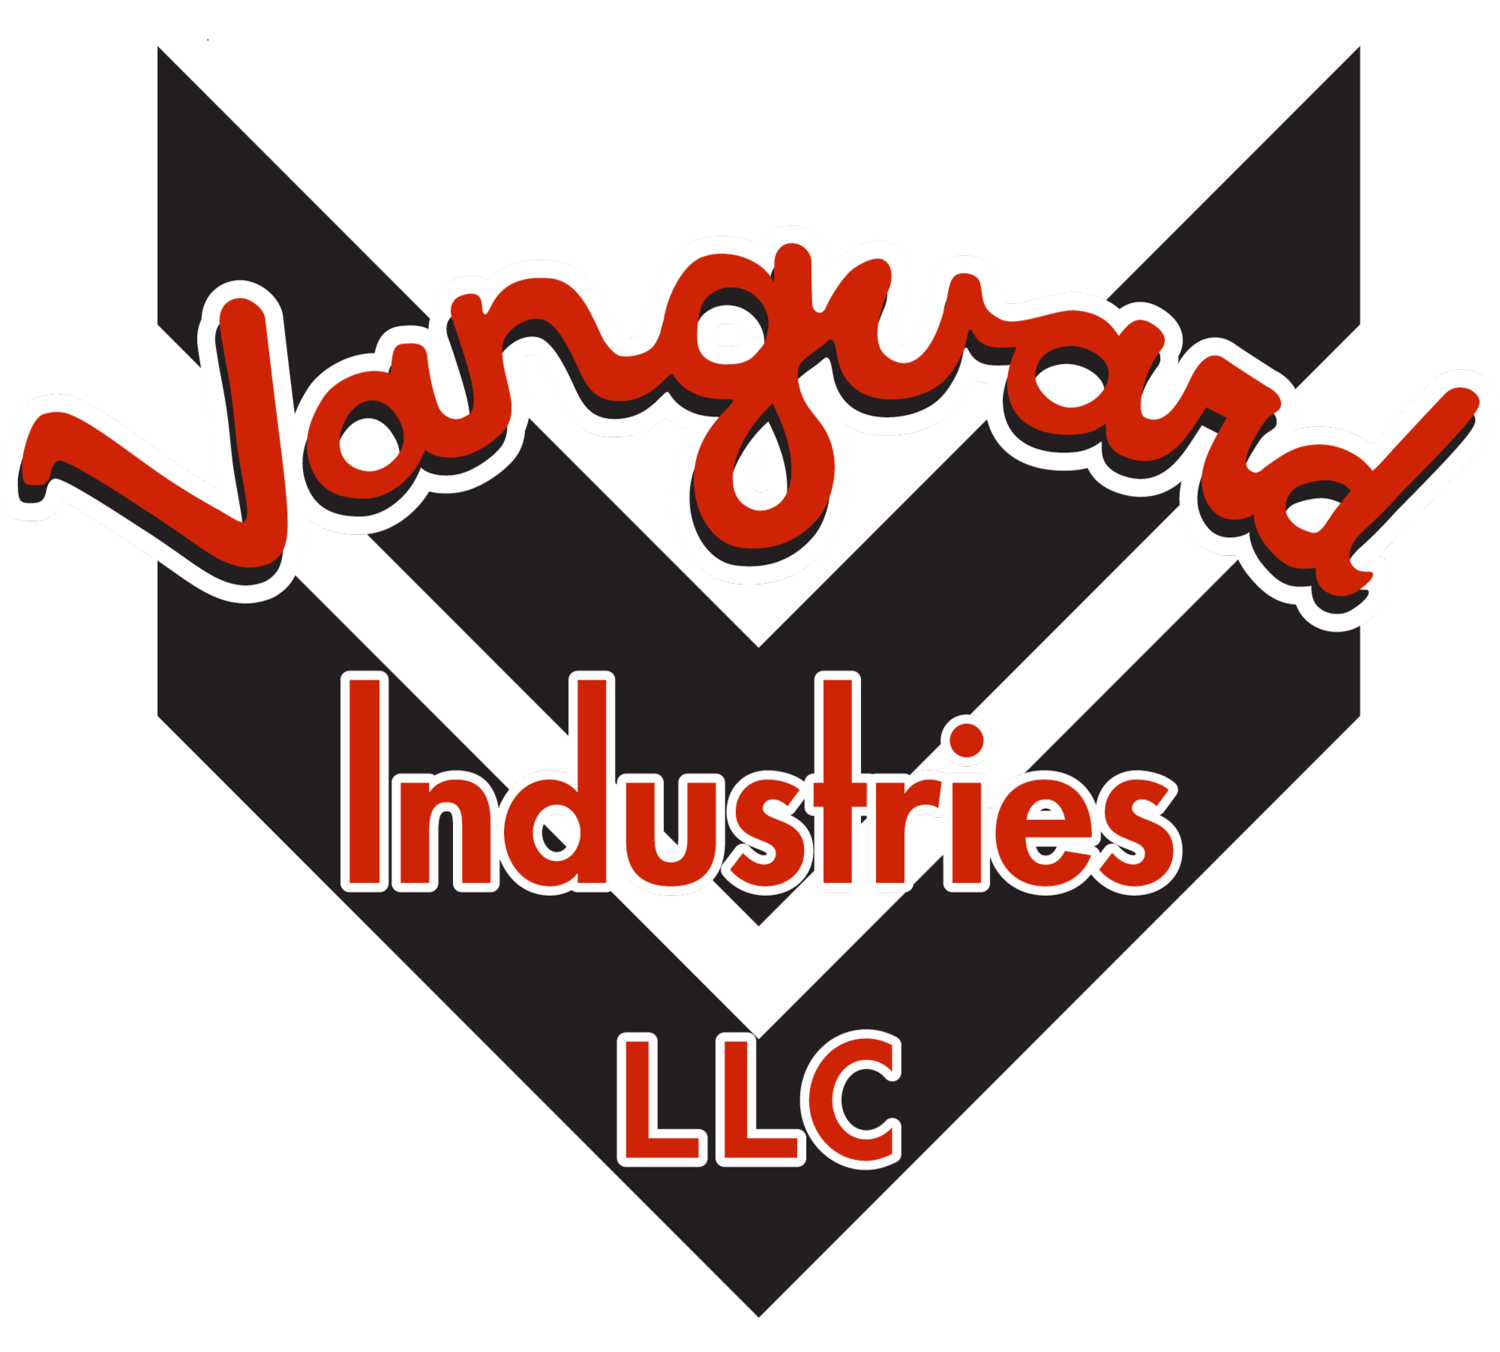 Vanguard Industries, LLC